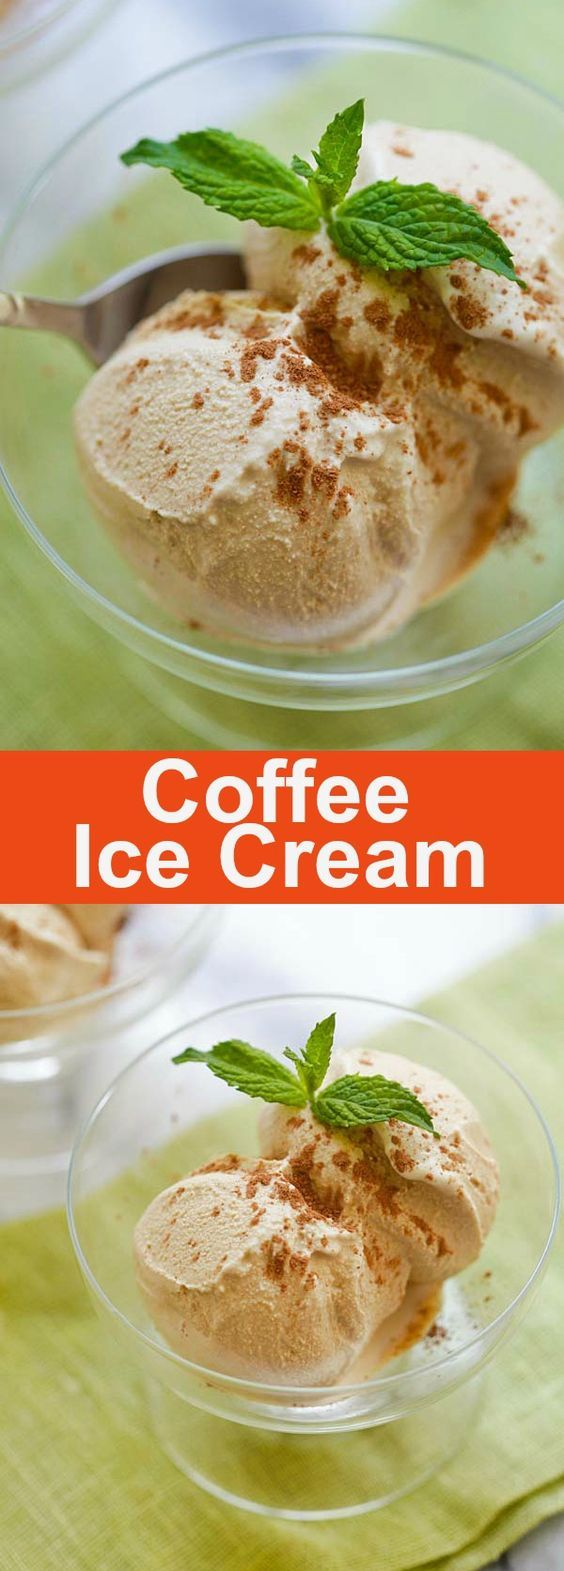 Coffee Ice Cream – Best type of coffee ice cream to make is the one with the coffee you are familiar with and enjoy drinking. This recipe will be in three parts: espresso, instant coffee, and coffee beans   rasamalaysia.com